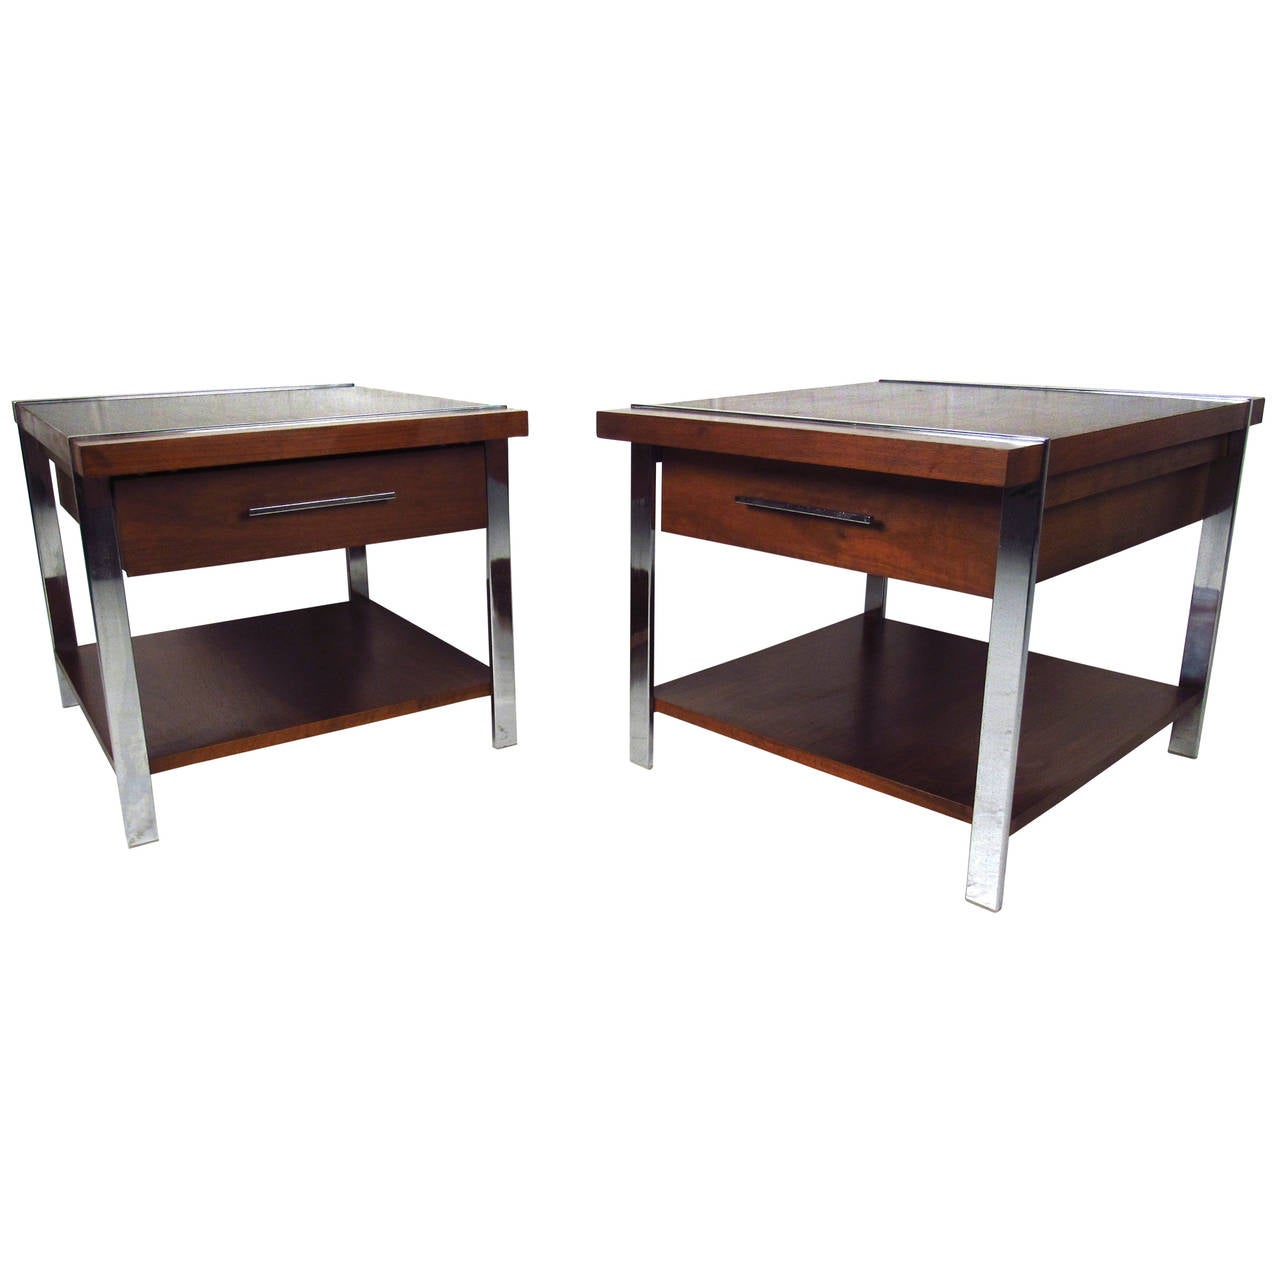 6a733468432f9 Mid-Century Modern End Tables by Lane Furniture For Sale at 1stdibs